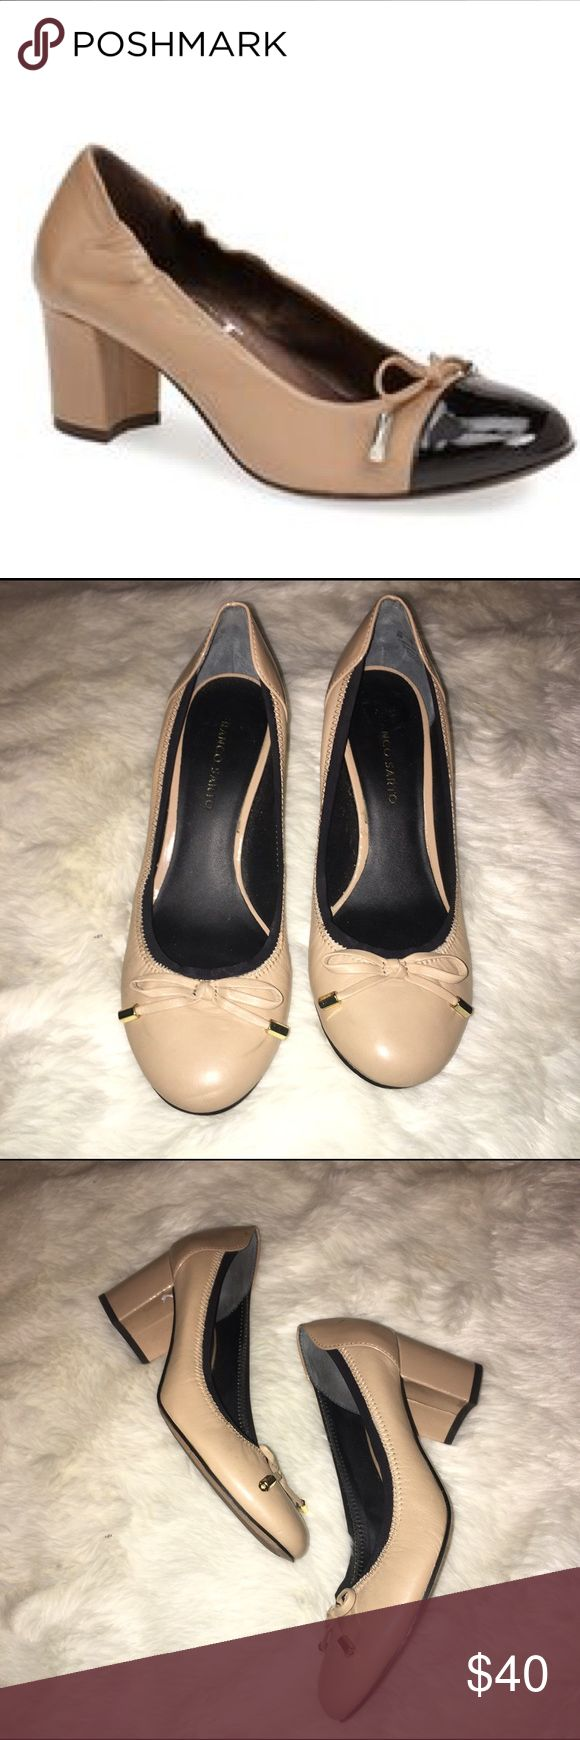 ✂️firm price✂️Franco Sarto chunky heels Gorgeous scrunch side Franco Sarto chunky heel Sz 9. Excellent gently worn. A few scraps on bottom other wise pristine Franco Sarto Shoes Heels